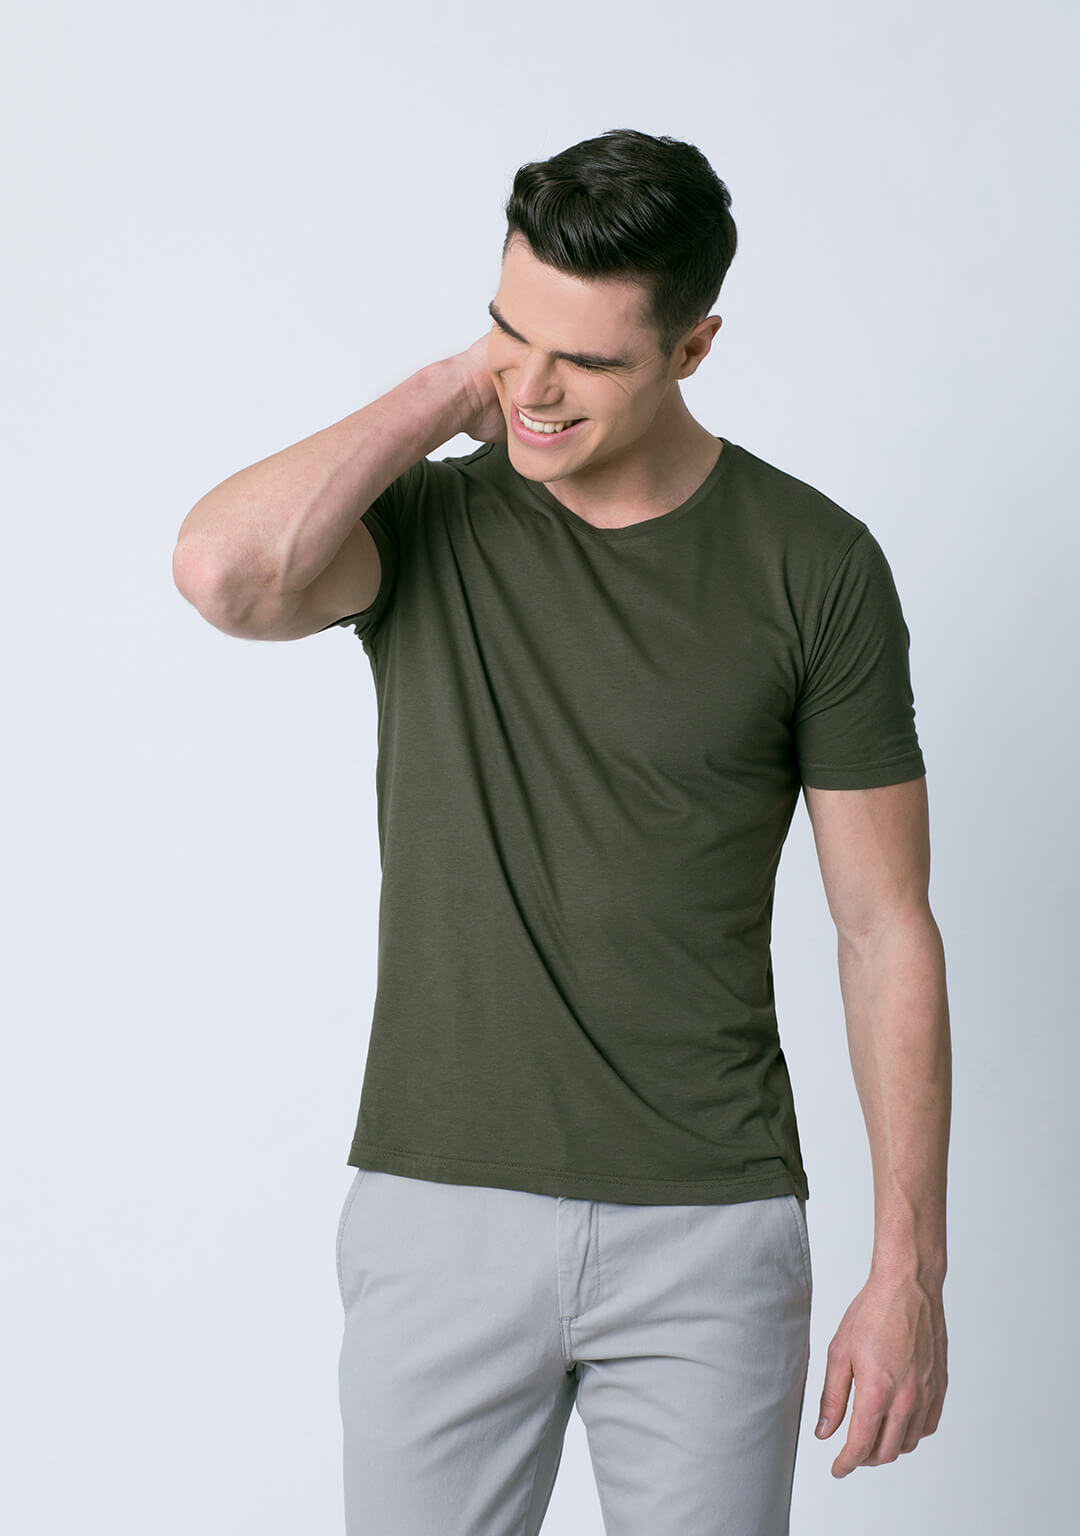 Crew Neck in Olive Green